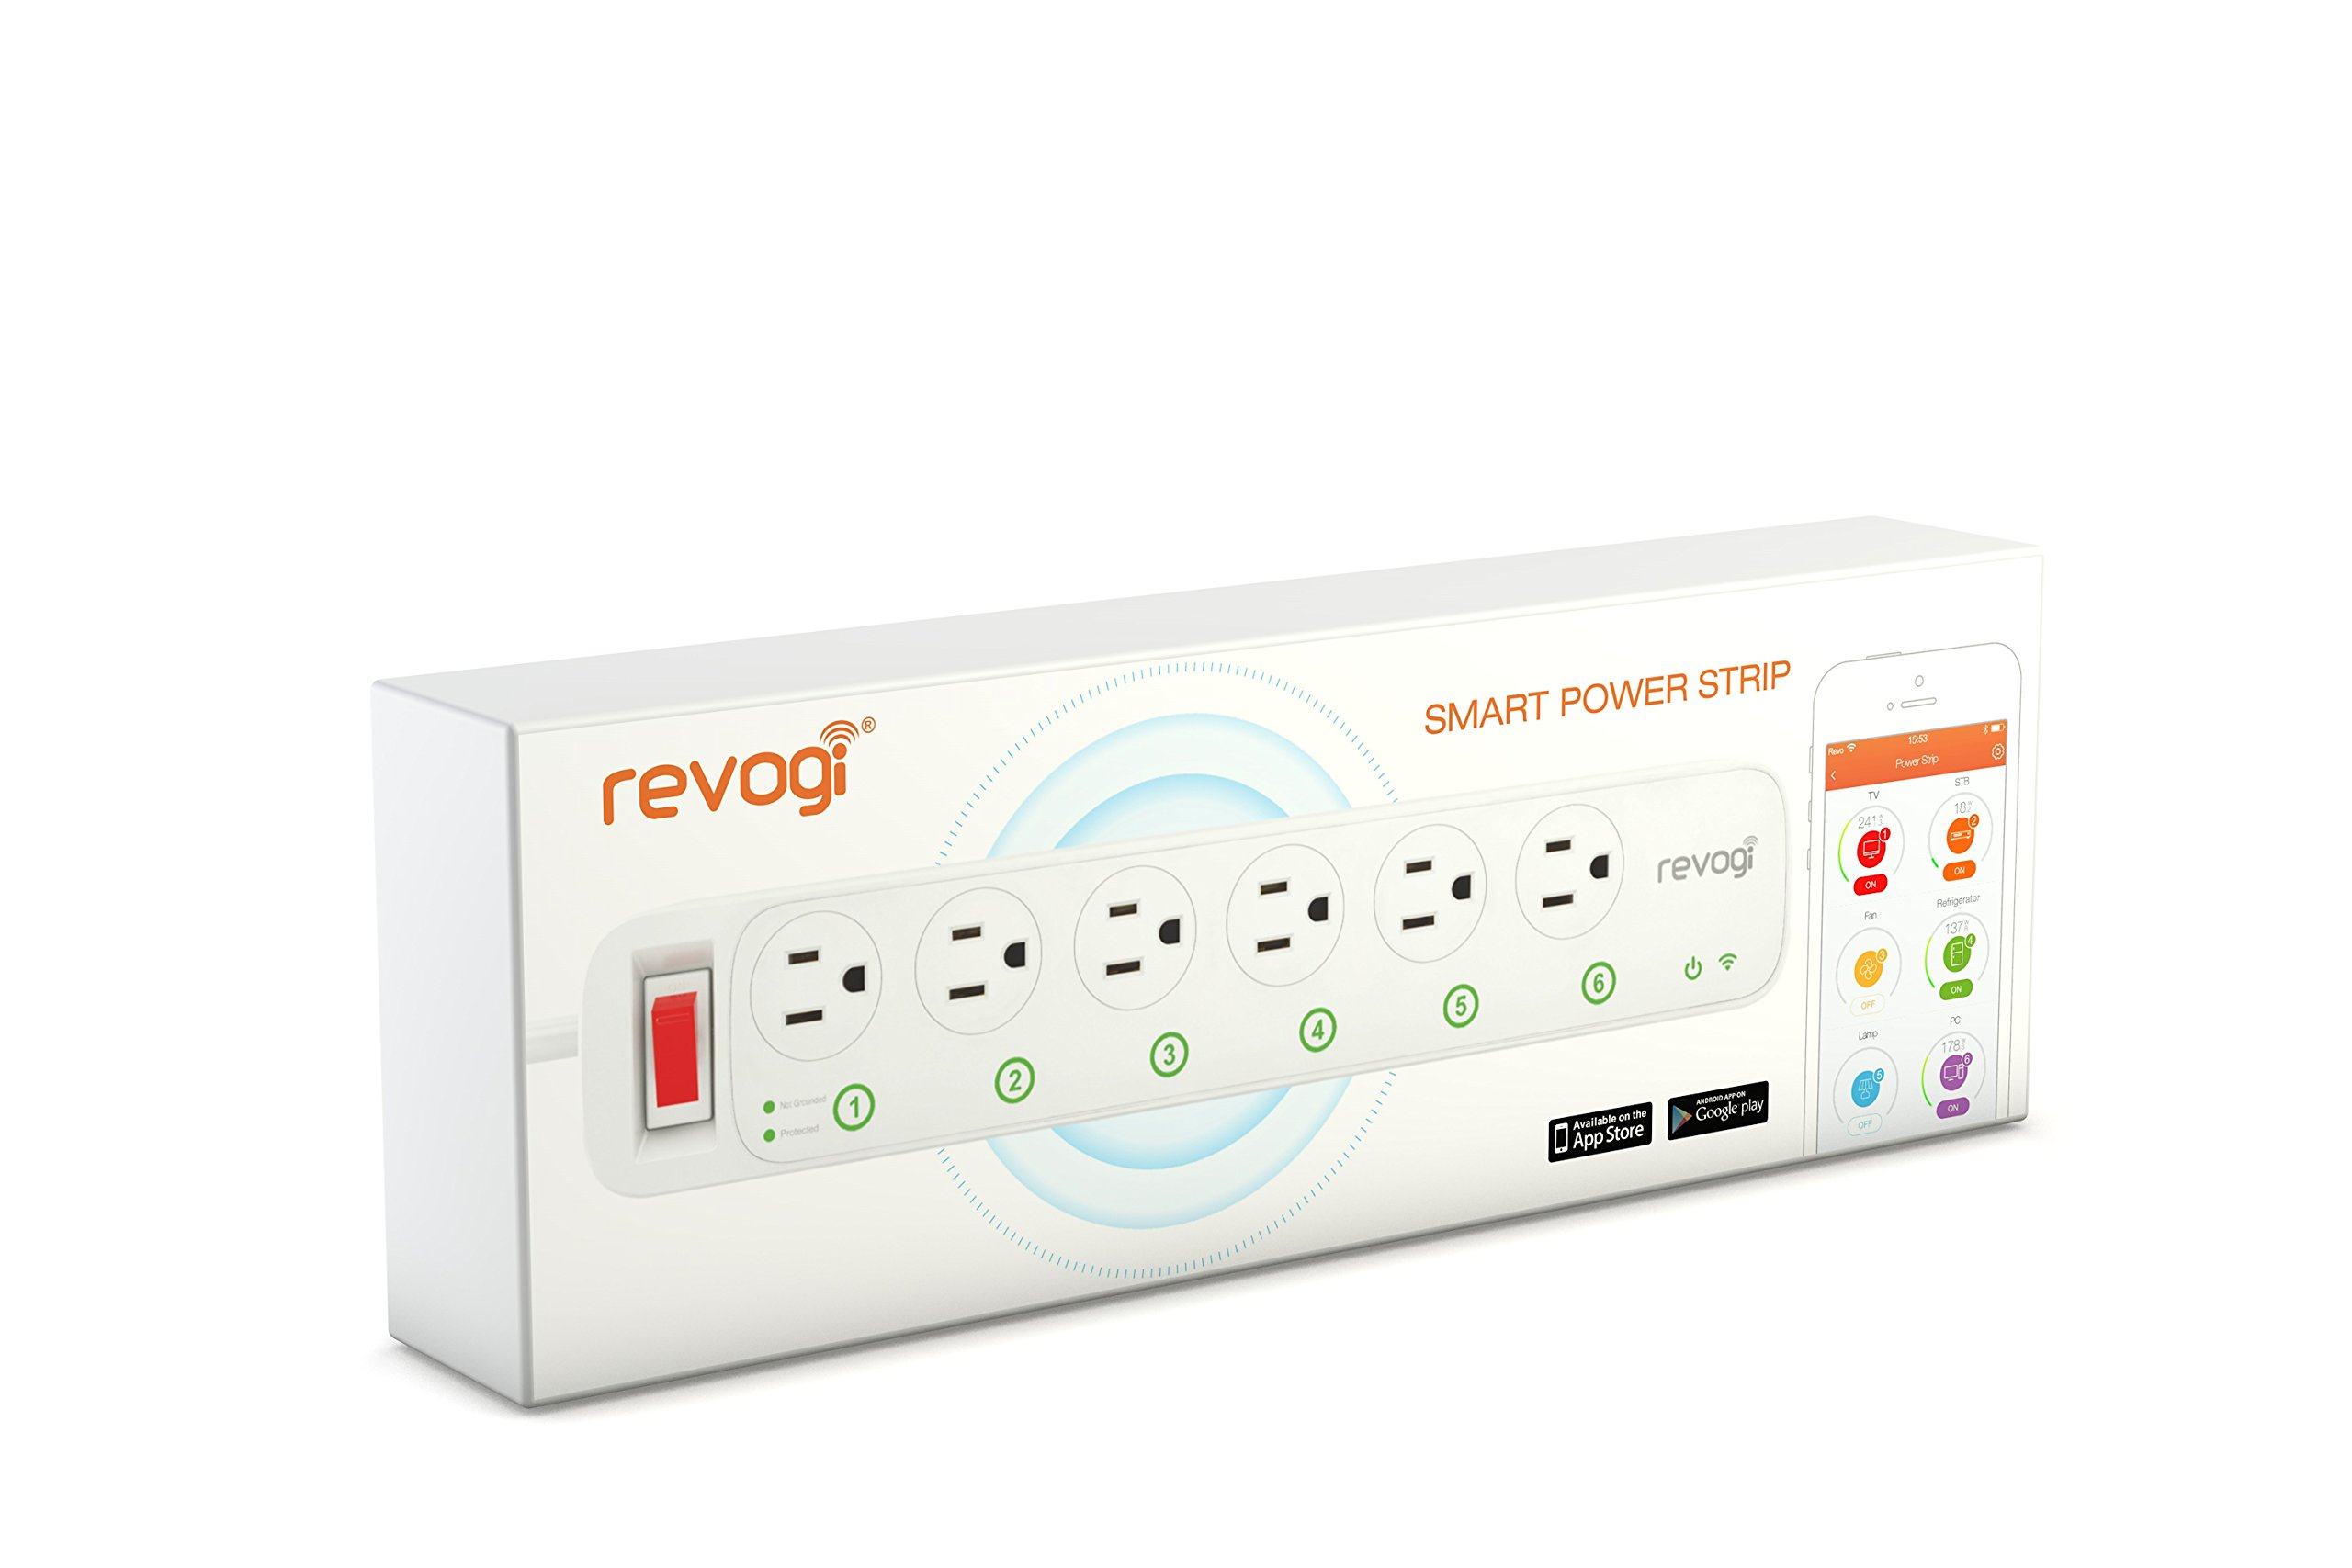 Revogi Smart Power Strip SOW014,controlled via Wi-Fi and LTE from anywhere, Turn on/off, schedule appliances, energy management, individual outlet control, Amazon Echo, Android and iOS compatible